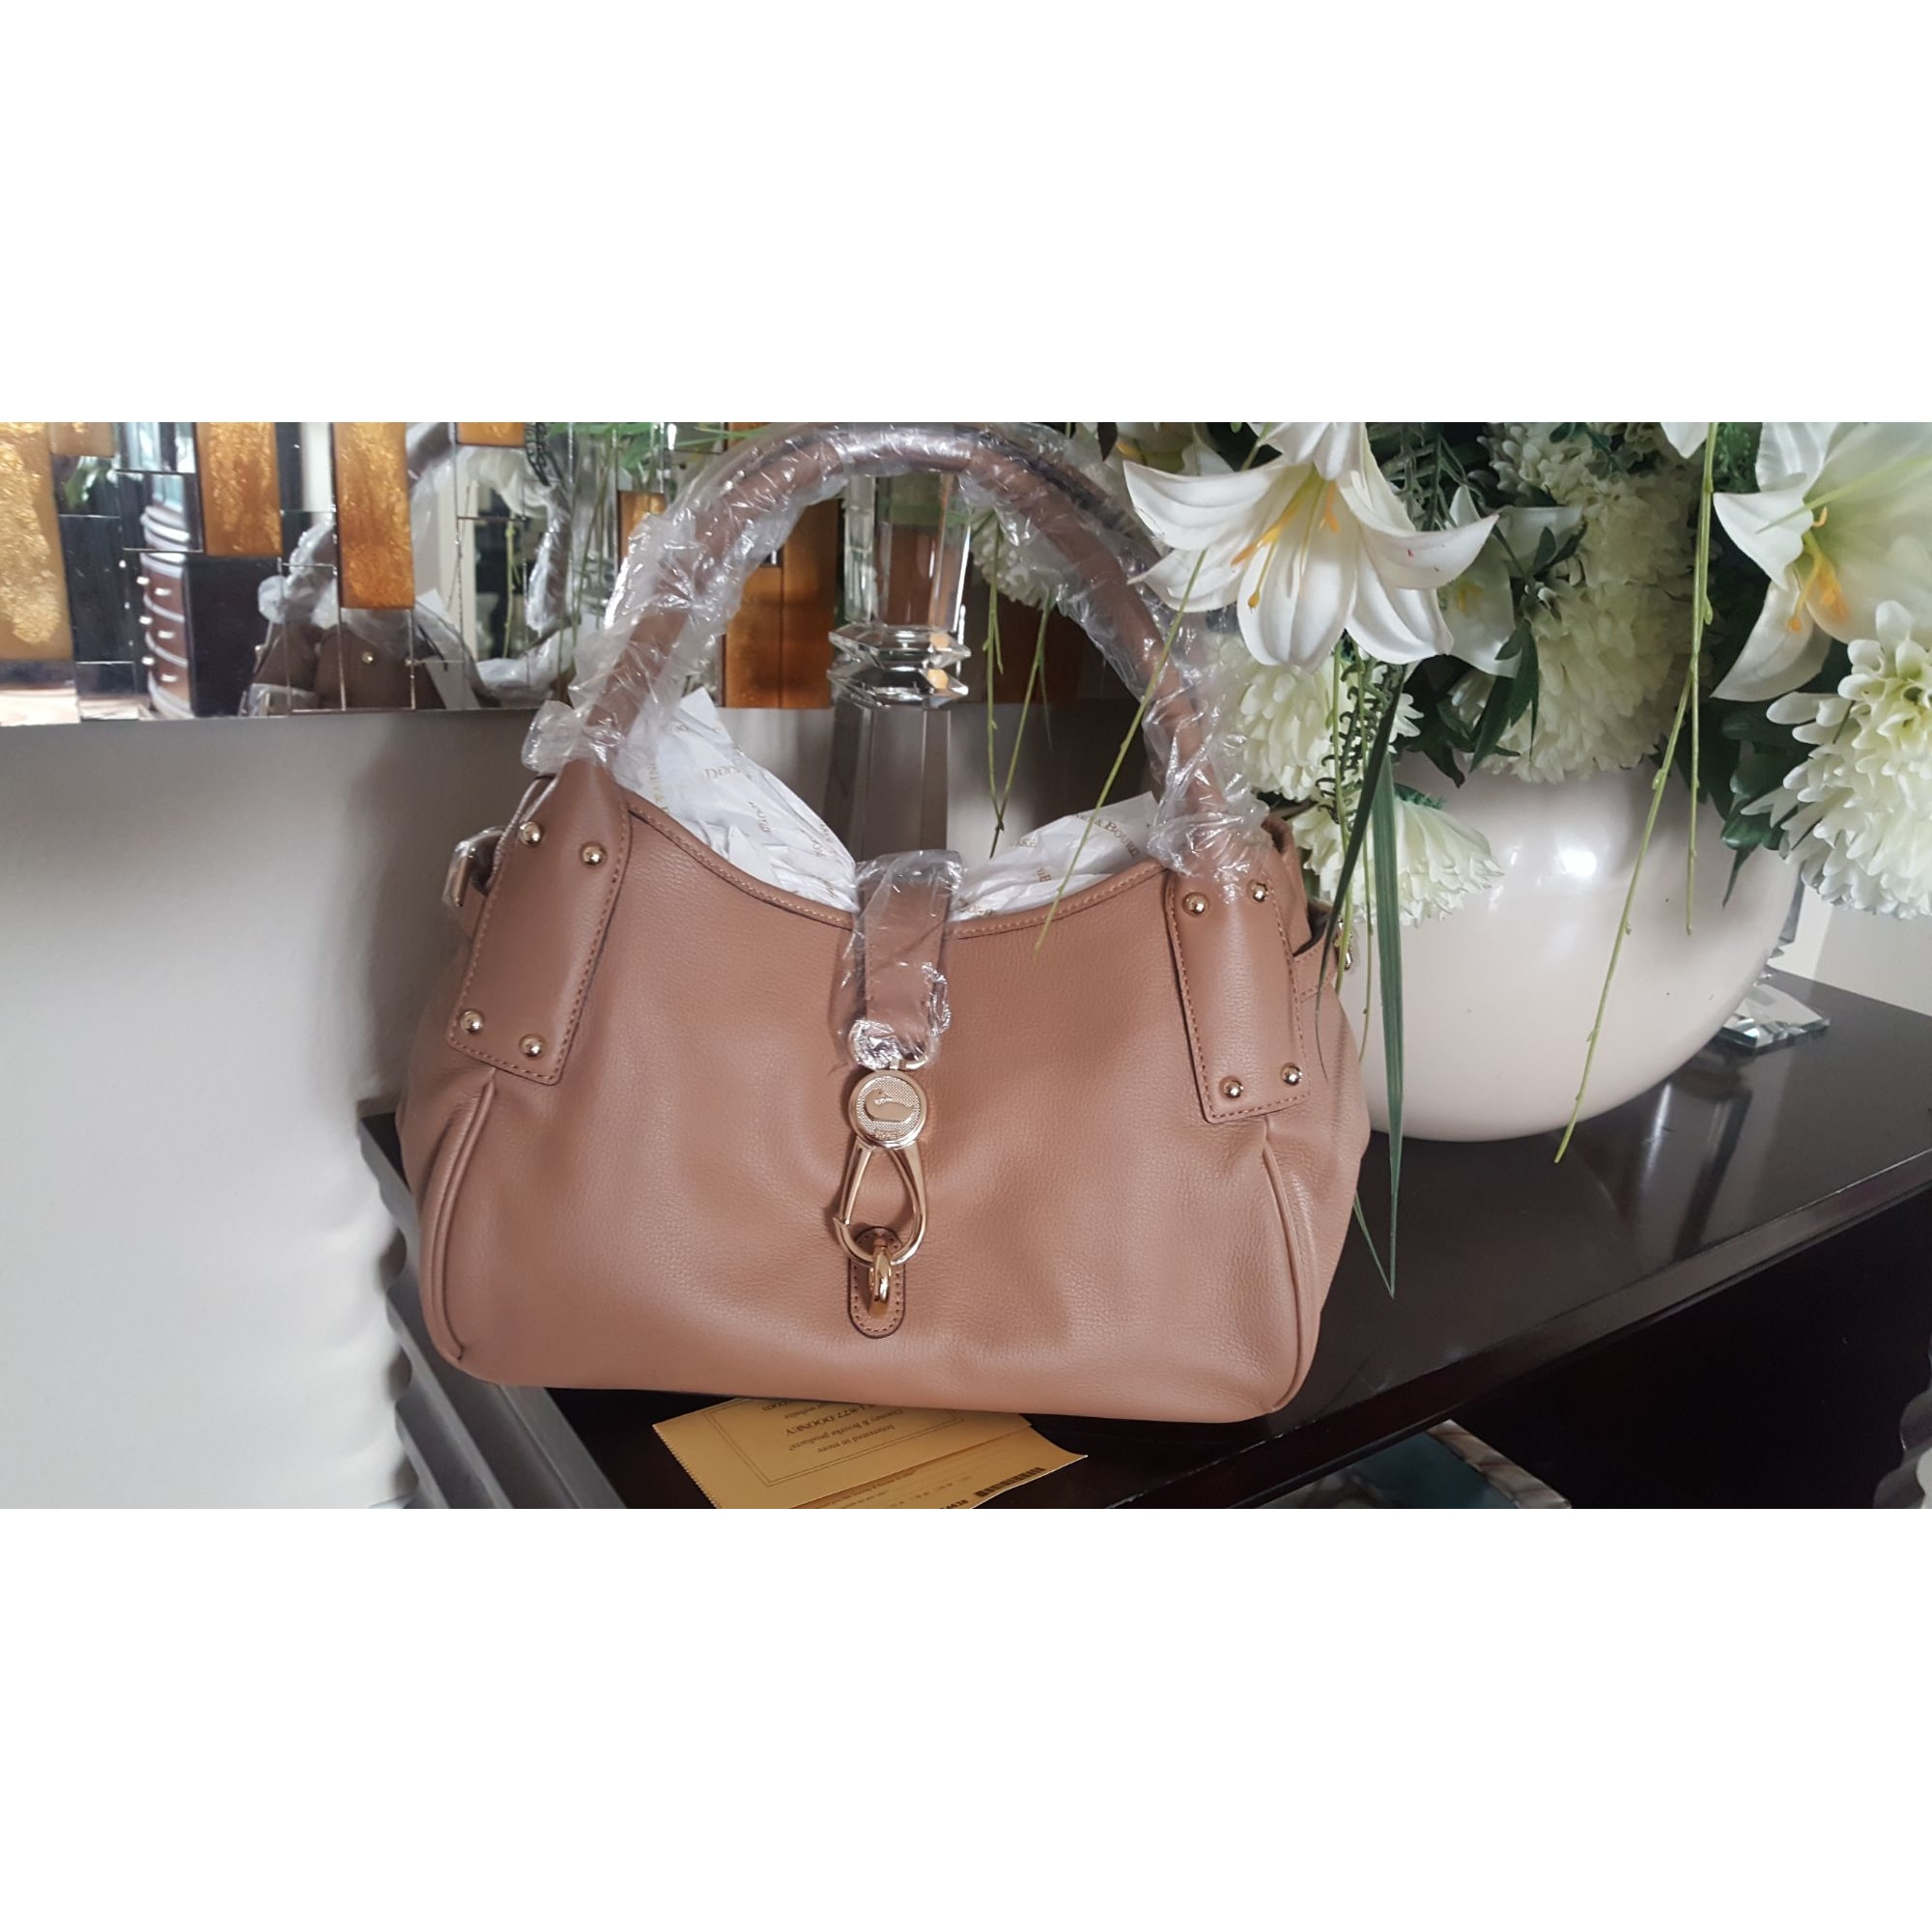 Sac à main en cuir DOONEY & BOURKE Sand